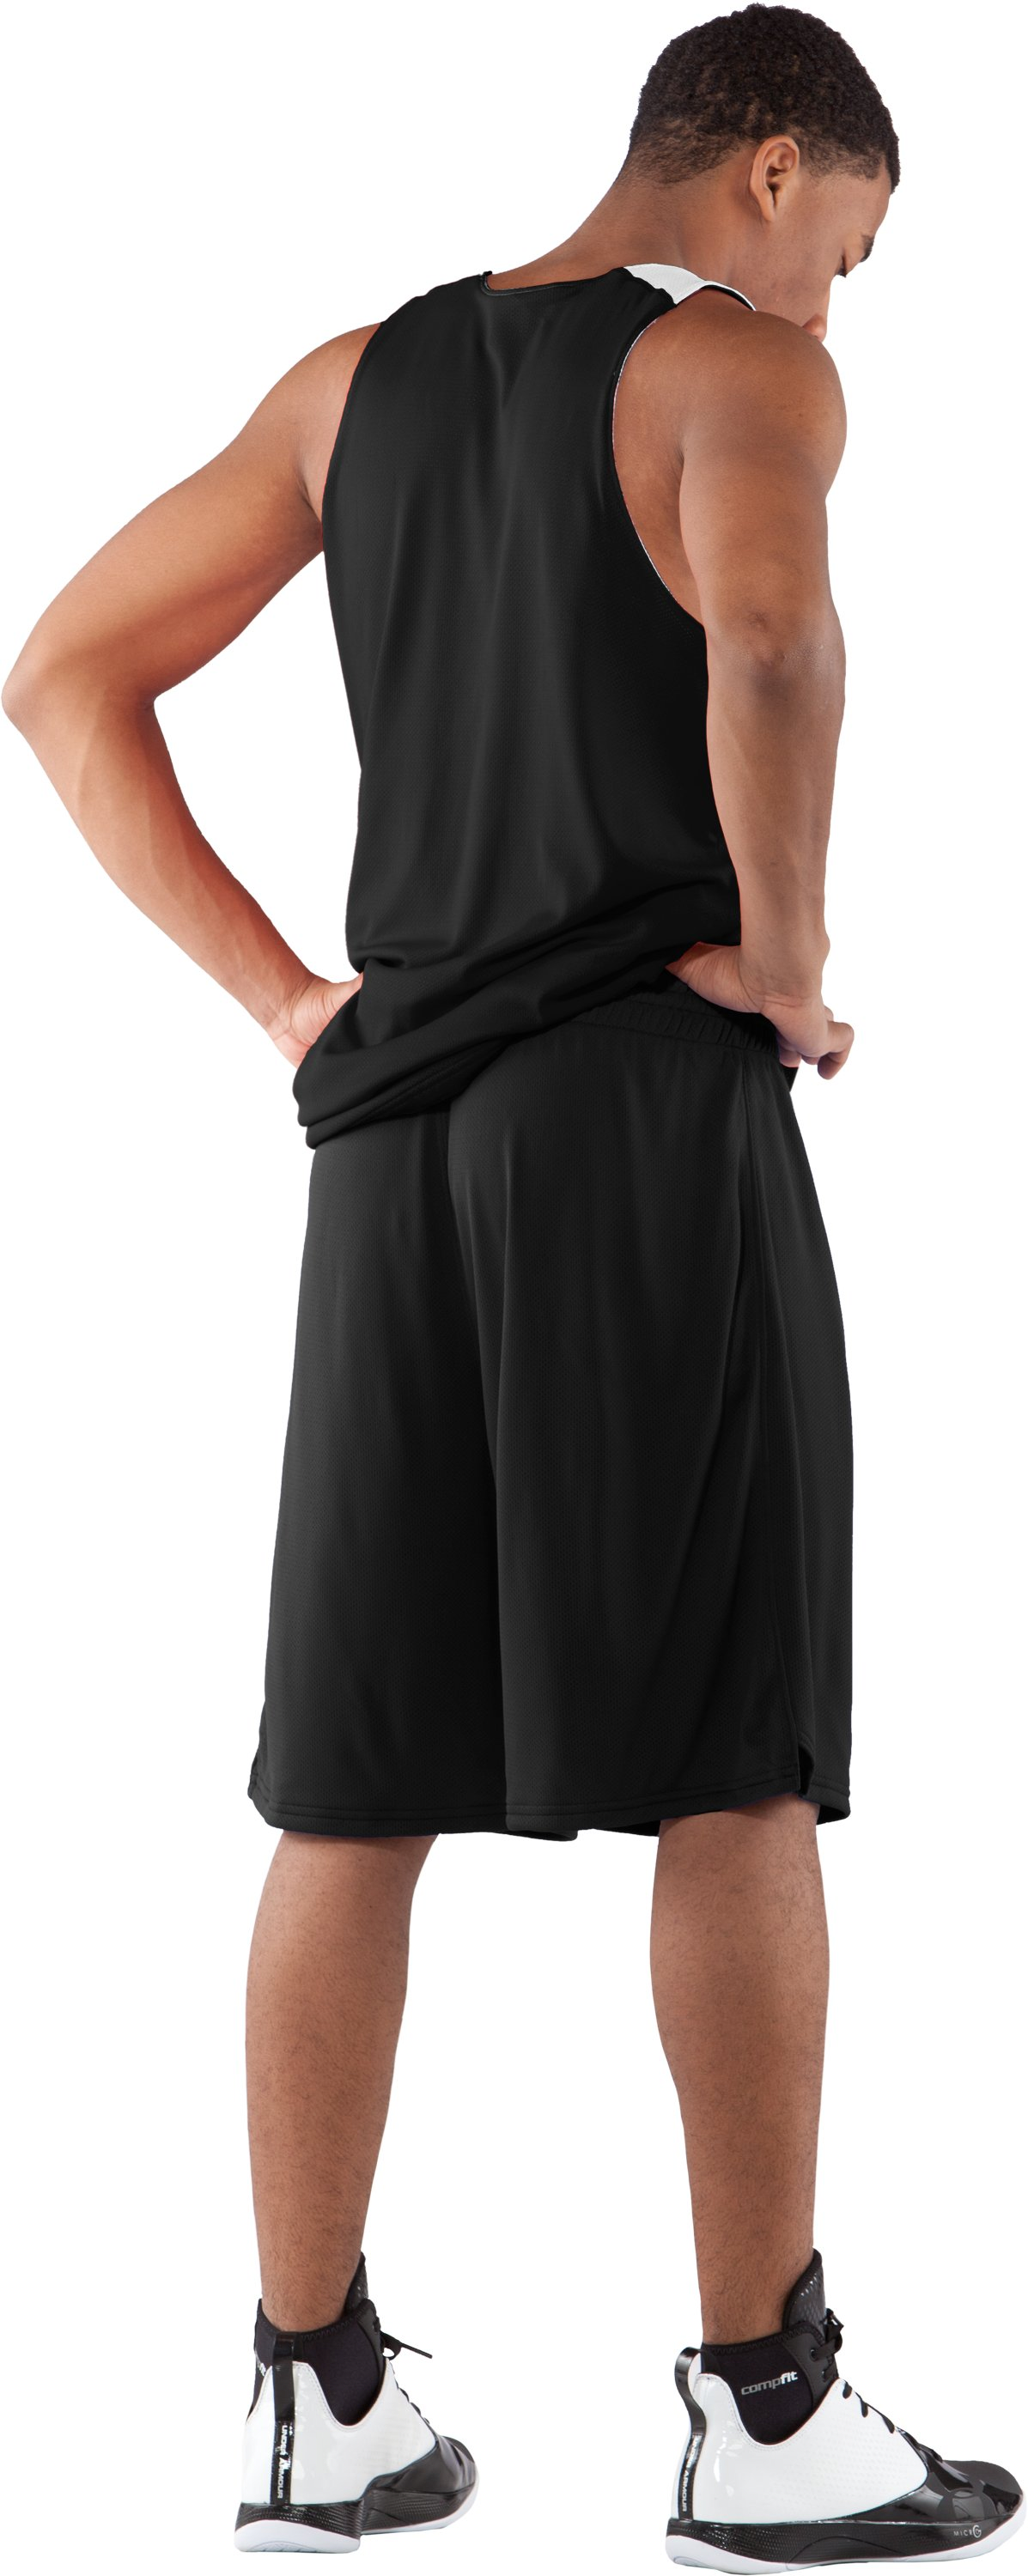 "Men's Dominate 10"" Basketball Shorts, Black , Back"